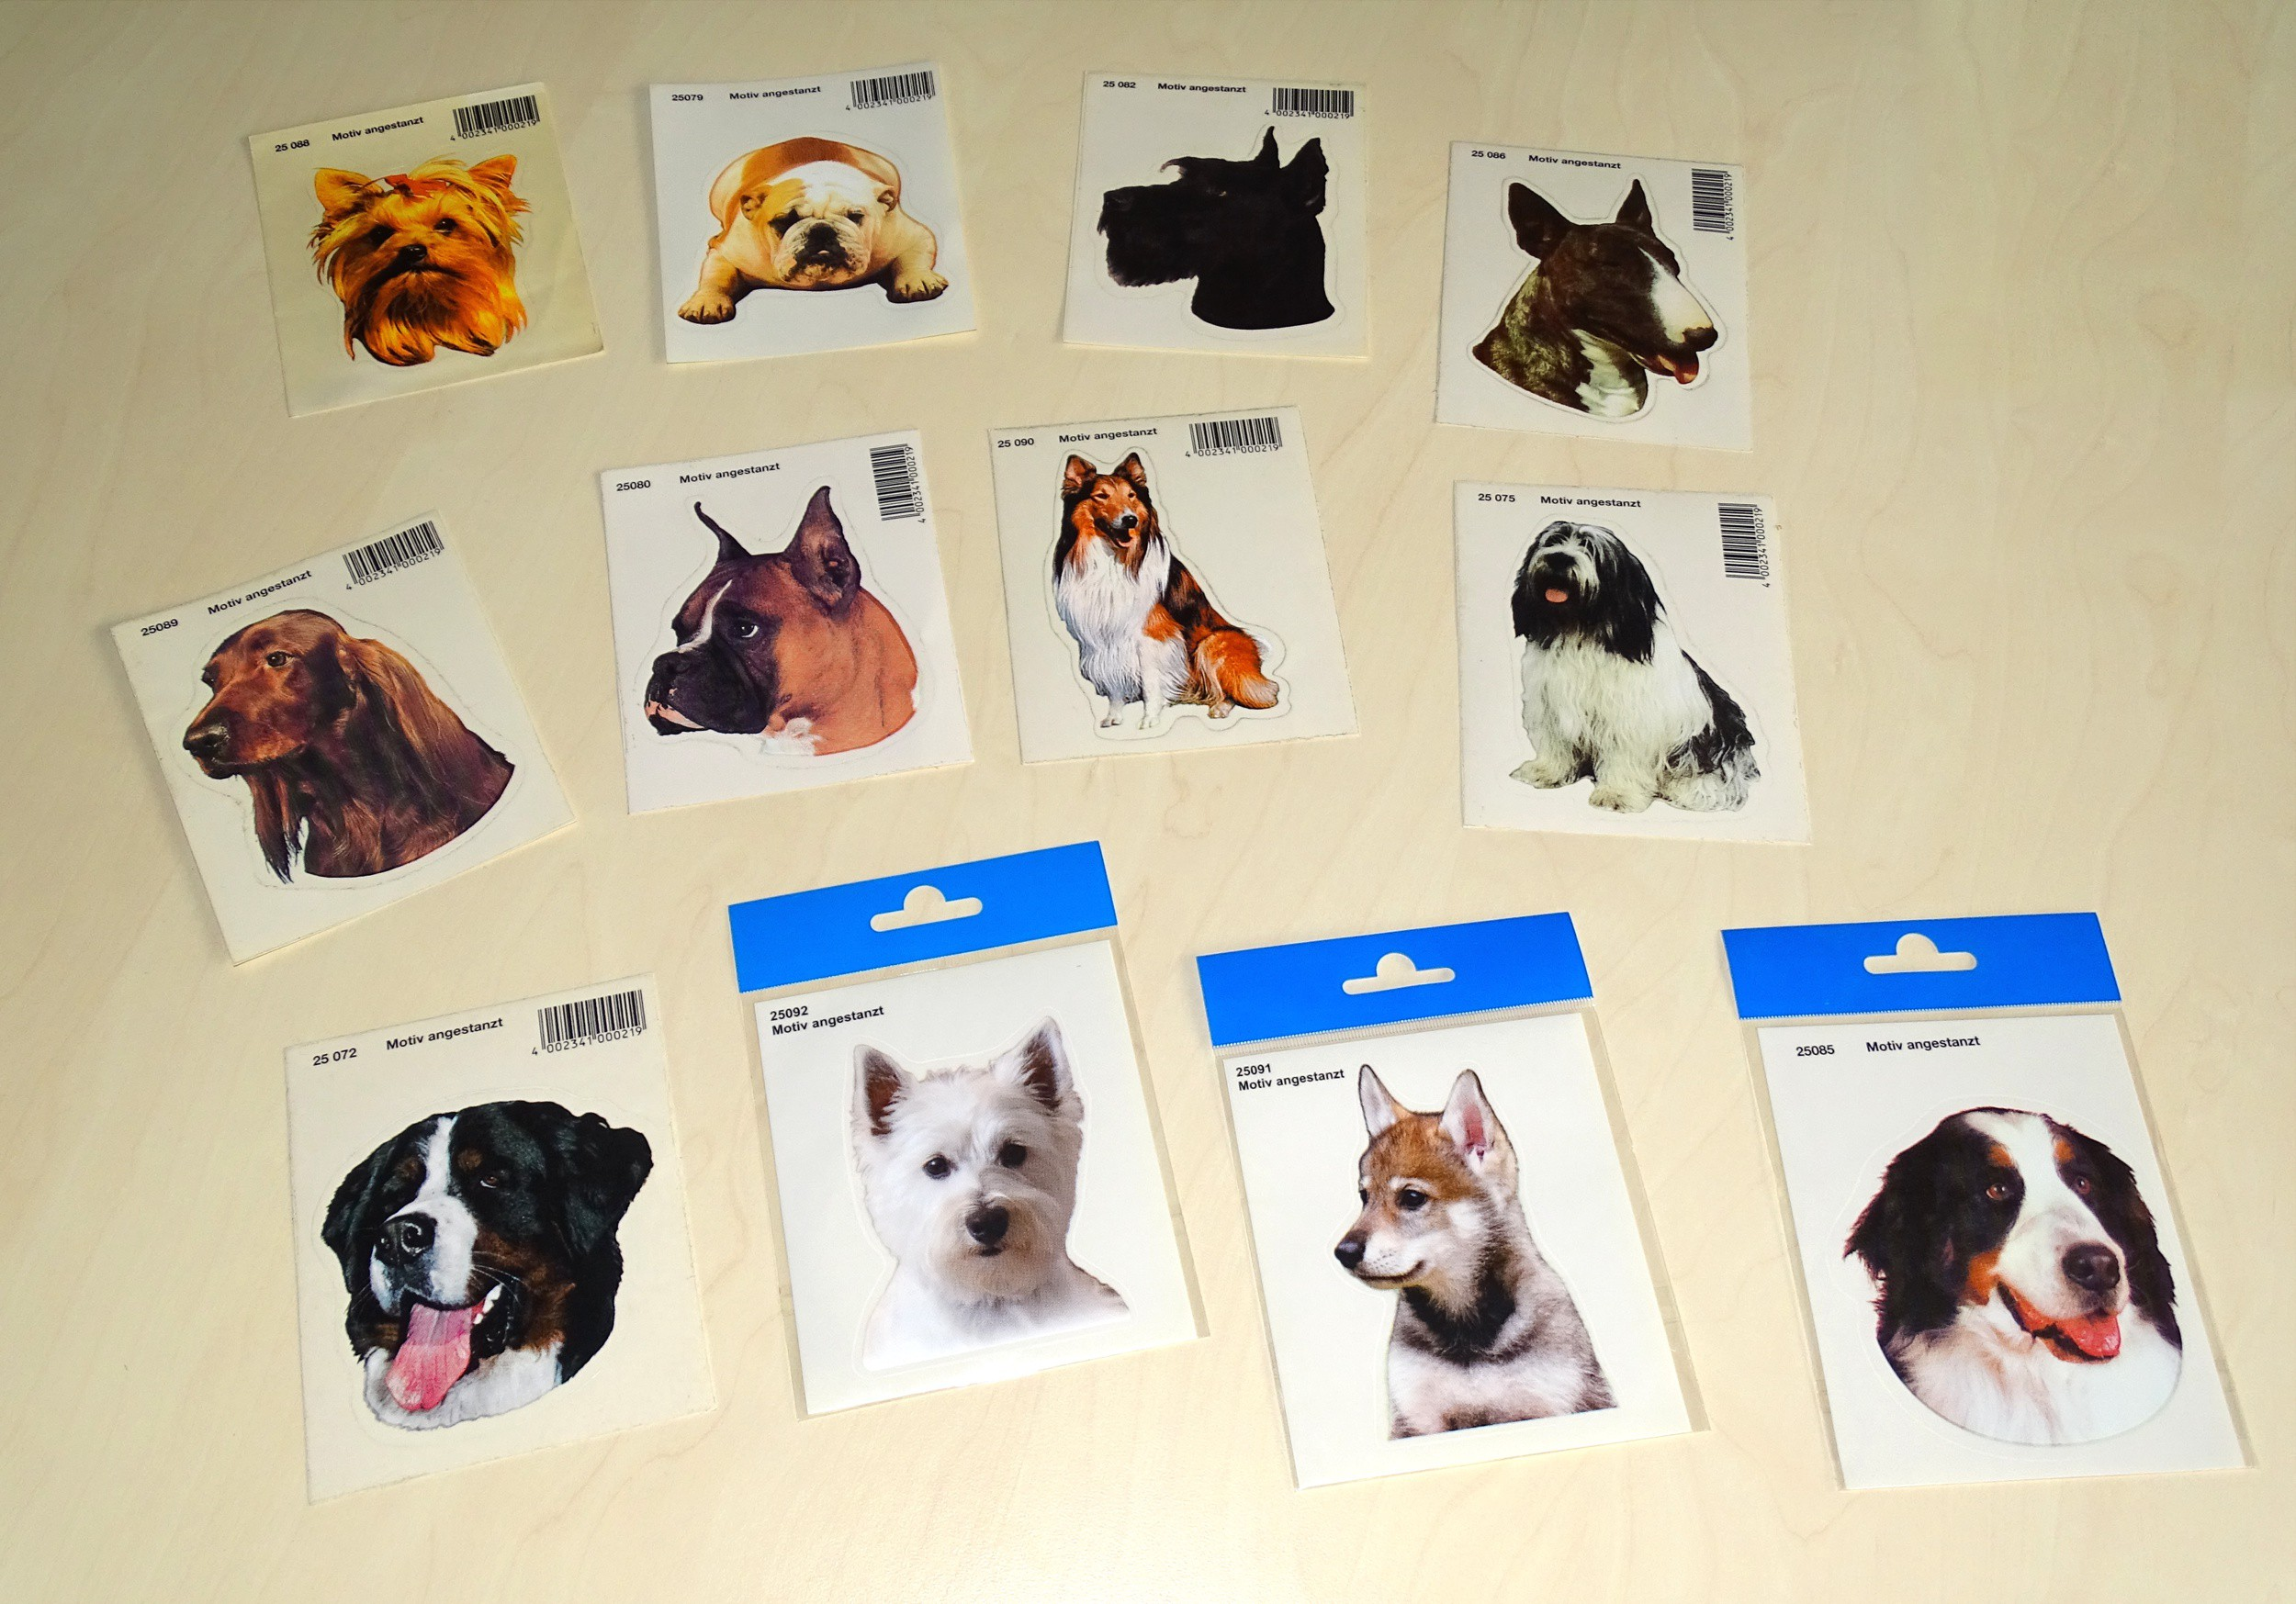 Sticker herder dog 125 x 110 mm – Bild 2